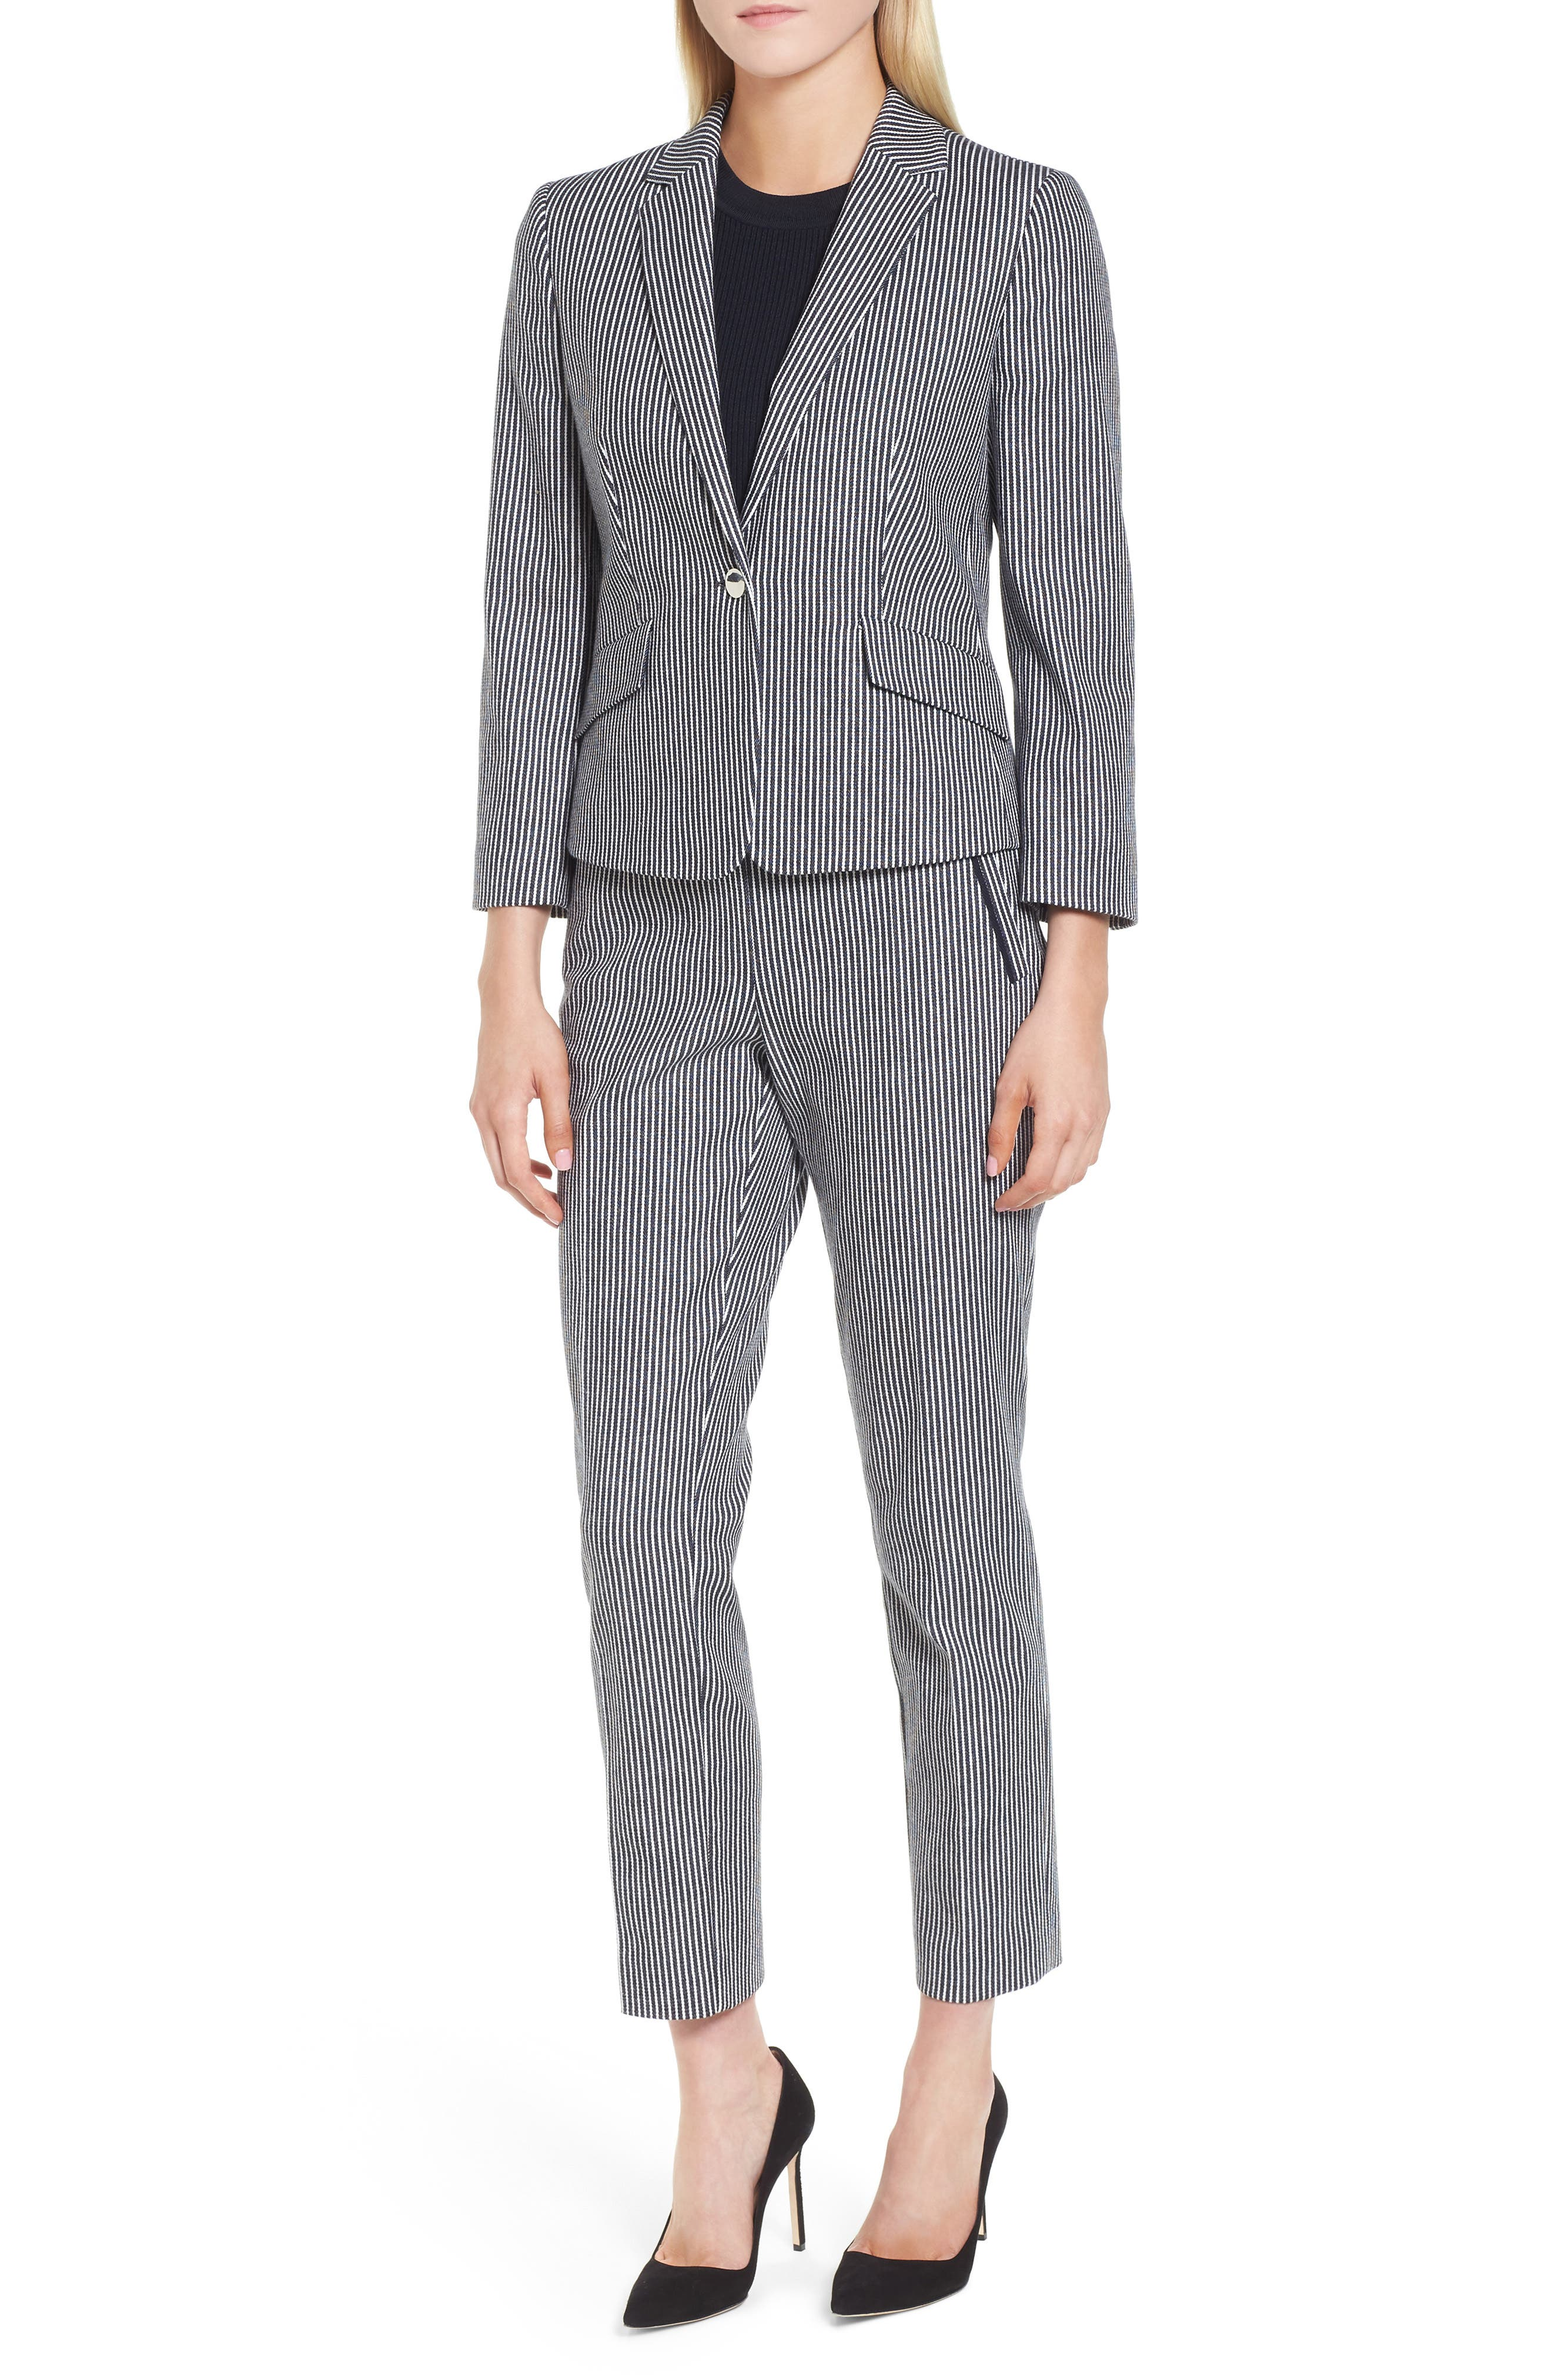 Katemika Stripe Stretch Cotton Suit Jacket,                             Alternate thumbnail 7, color,                             461